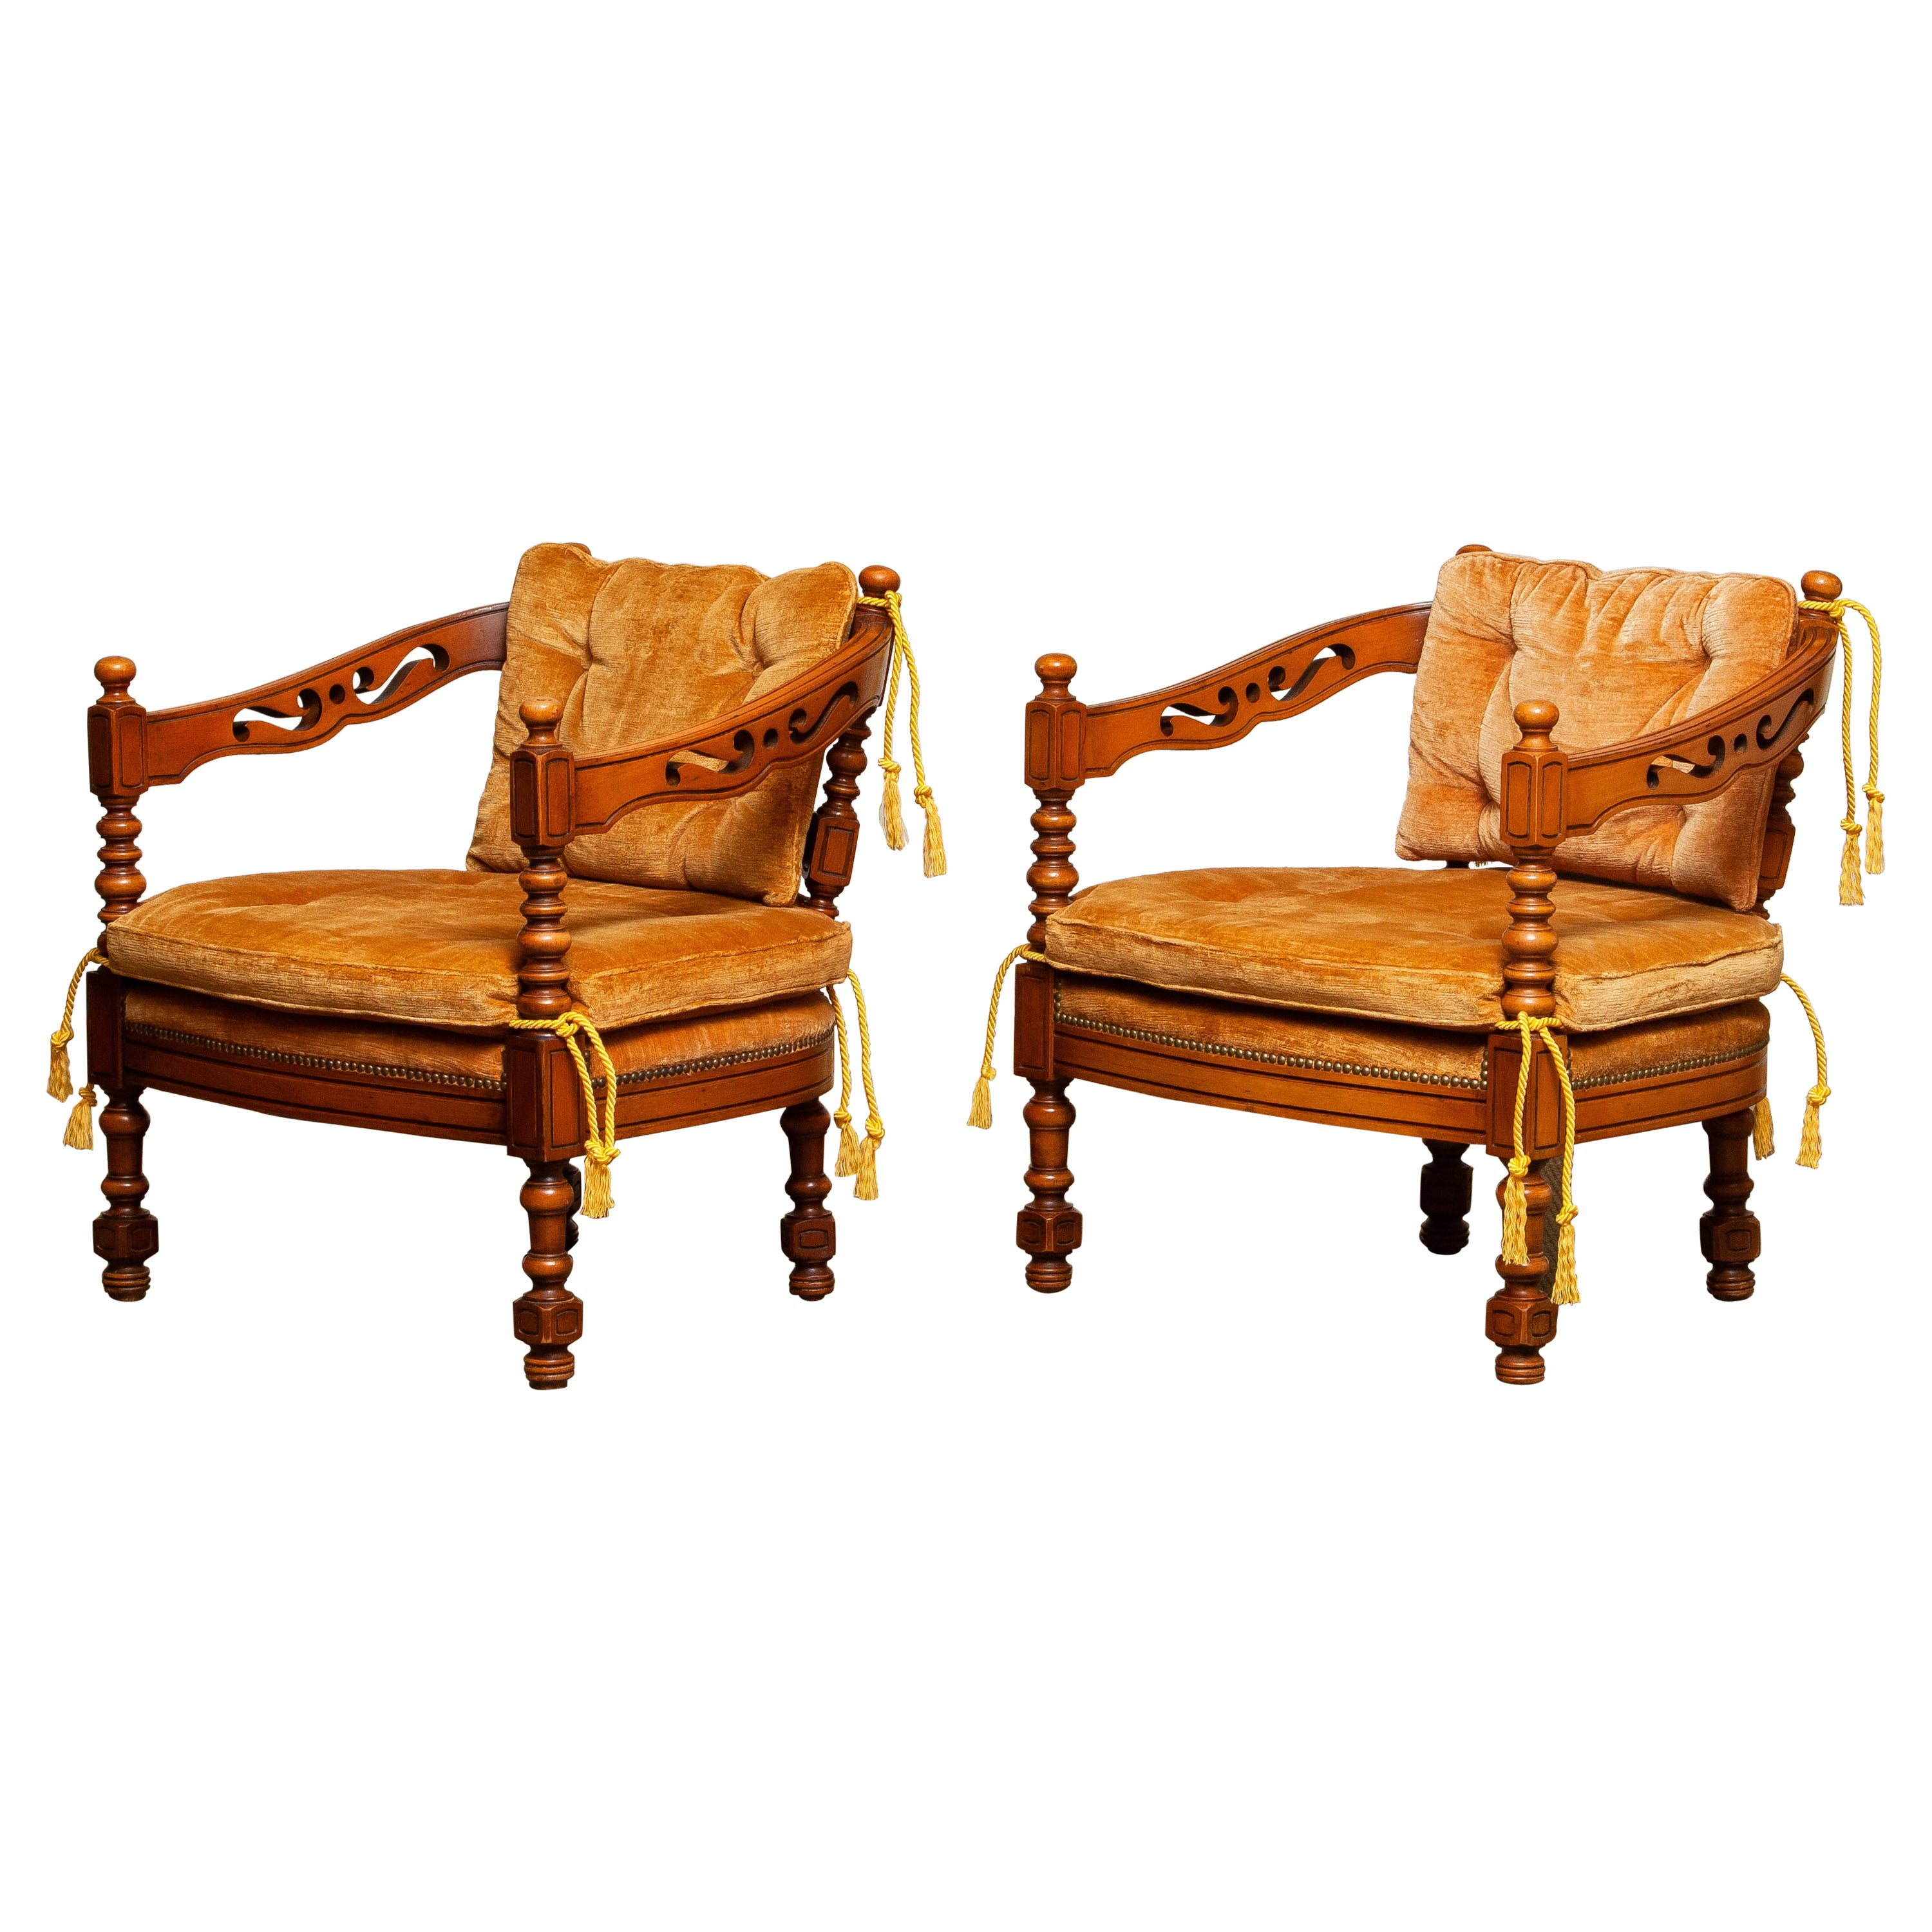 1970s, Set Giorgetti Arm Lounge Club Chairs of the Gallery Collection, Italy